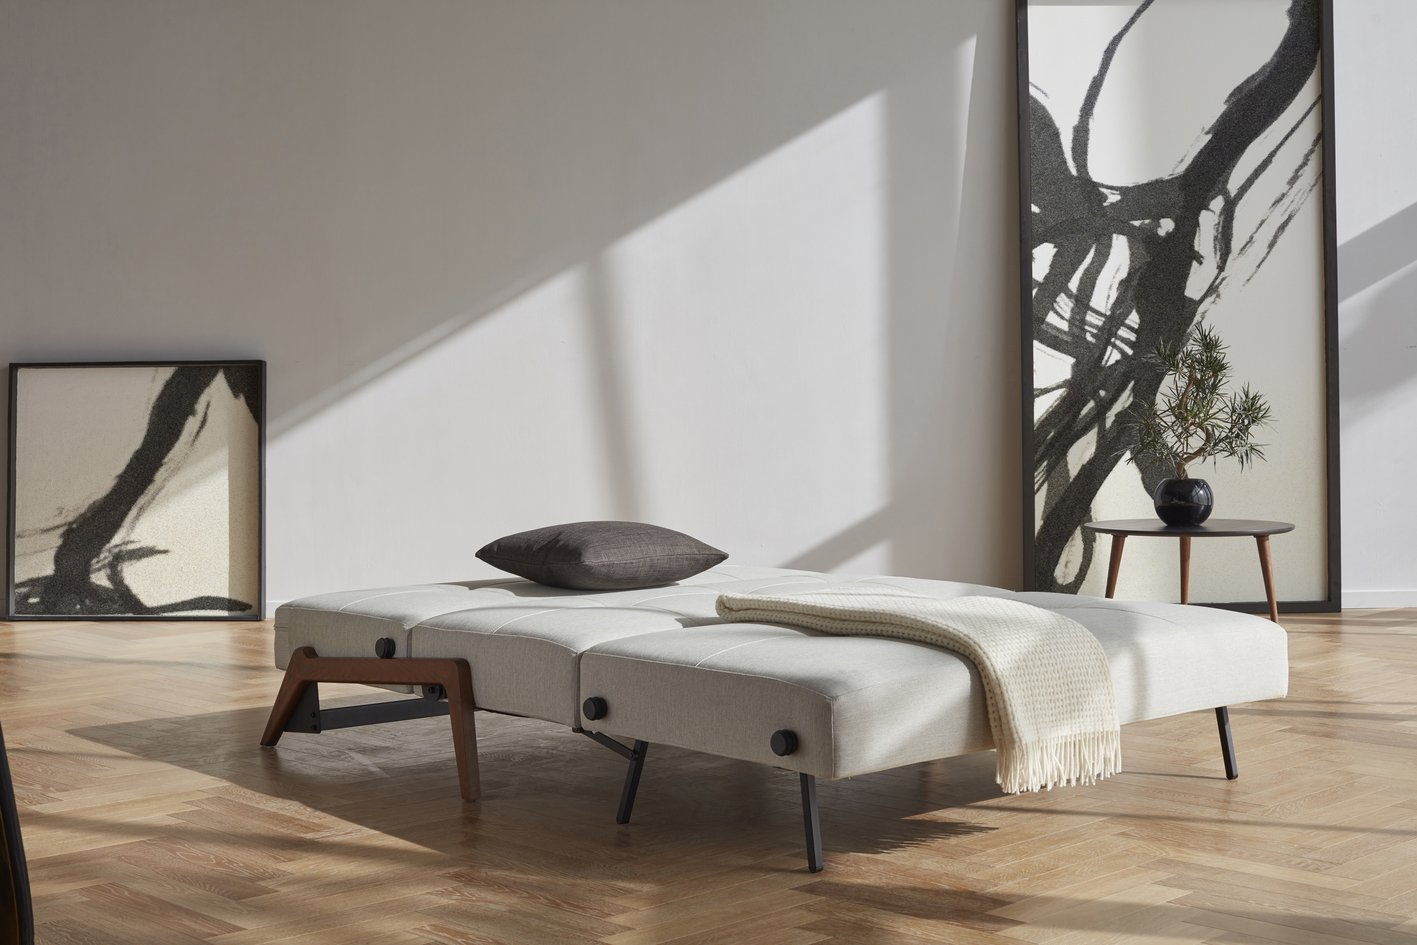 Zenkei Sleeper Sofa in Bed Mode